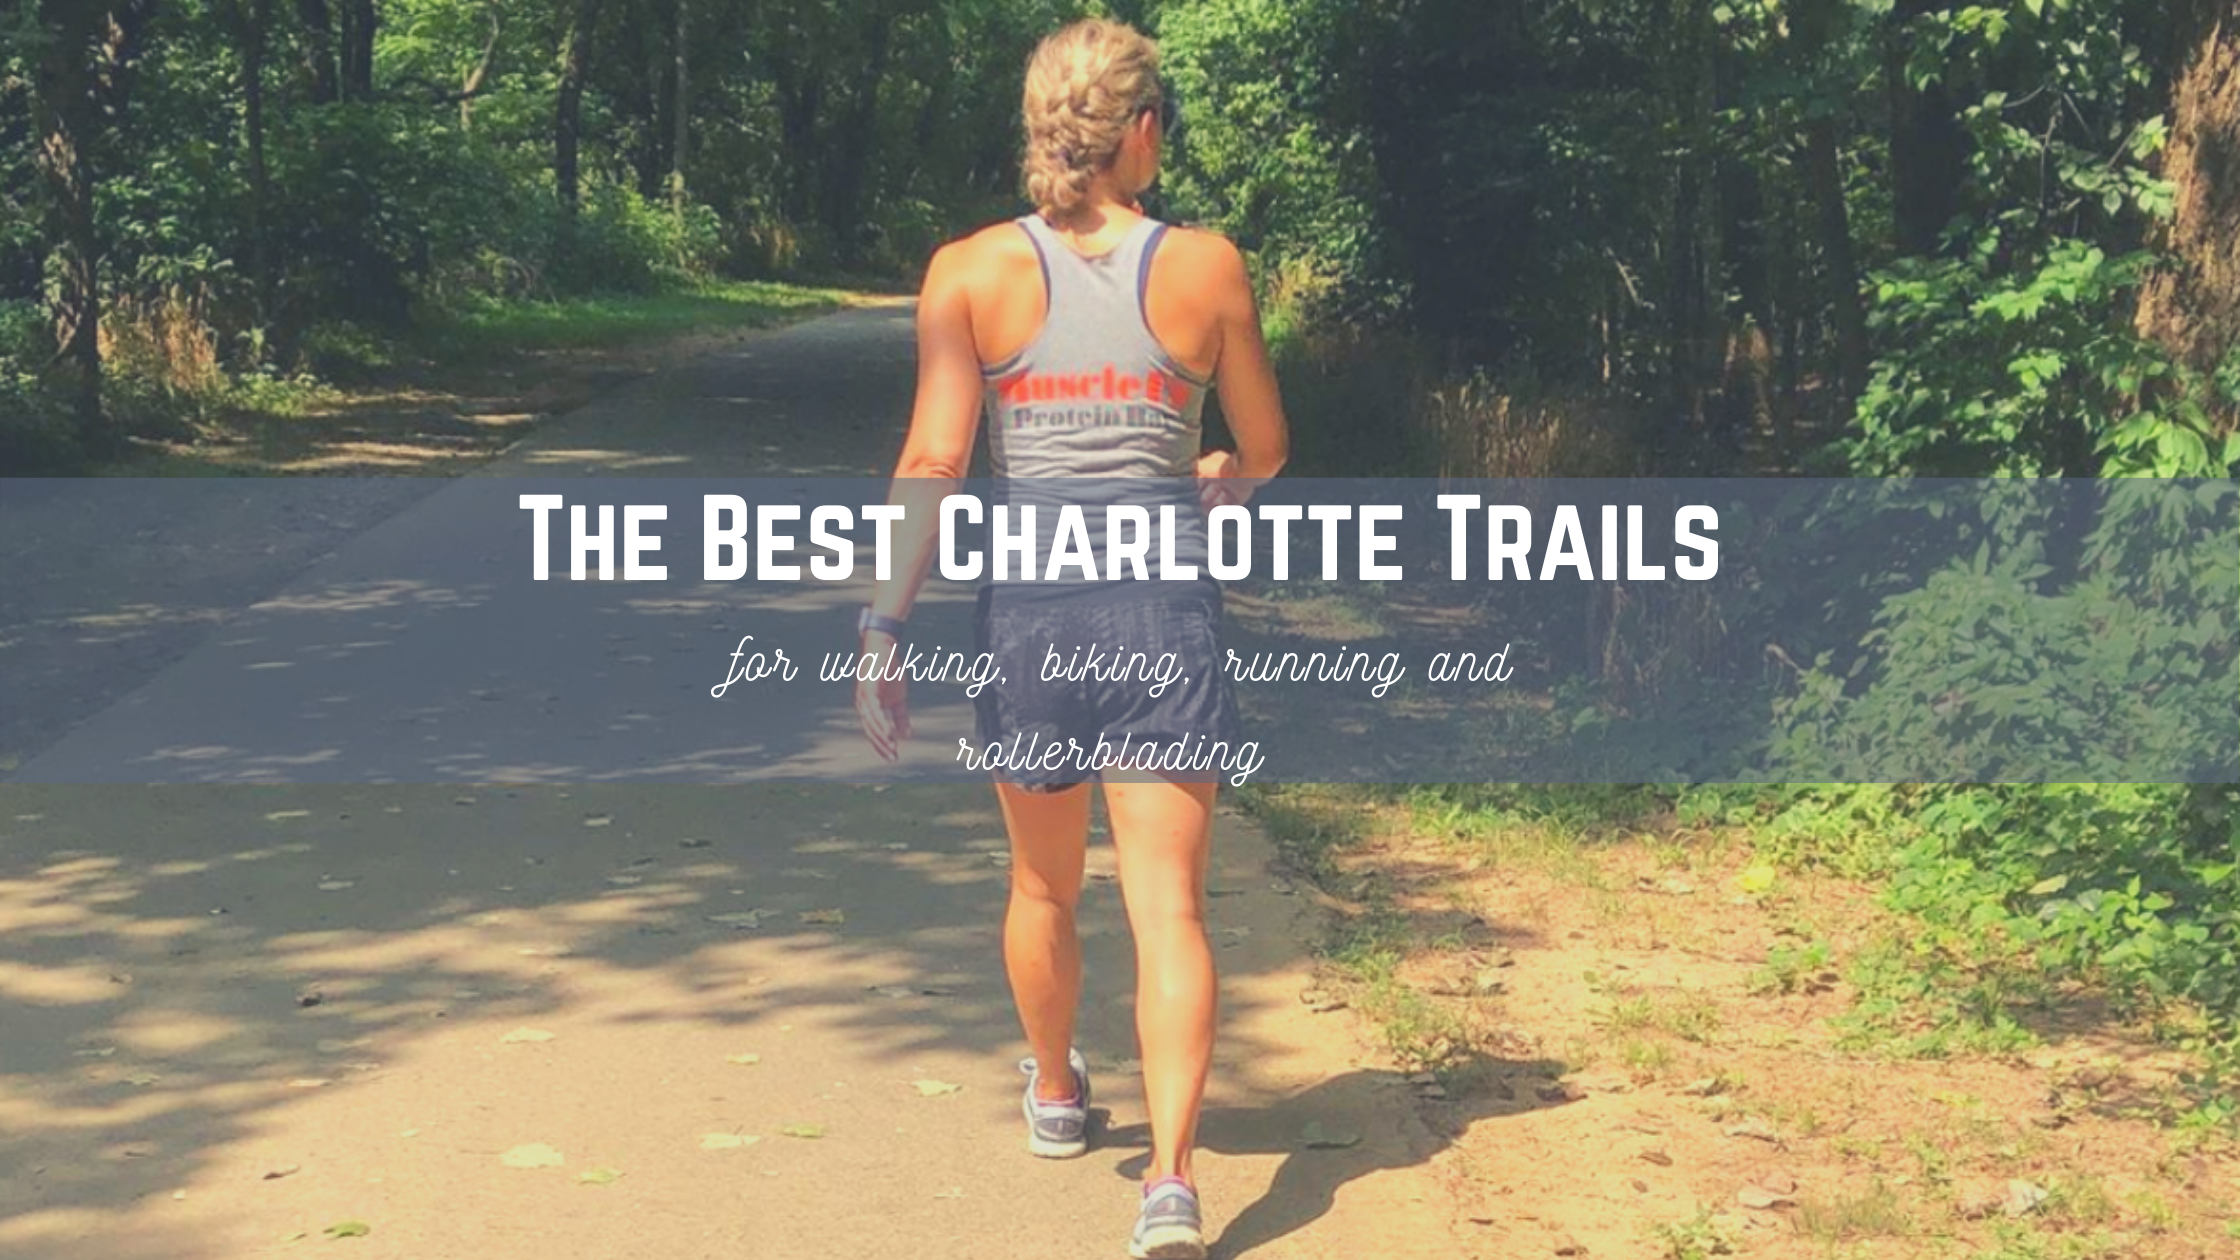 The Best Charlotte Trails